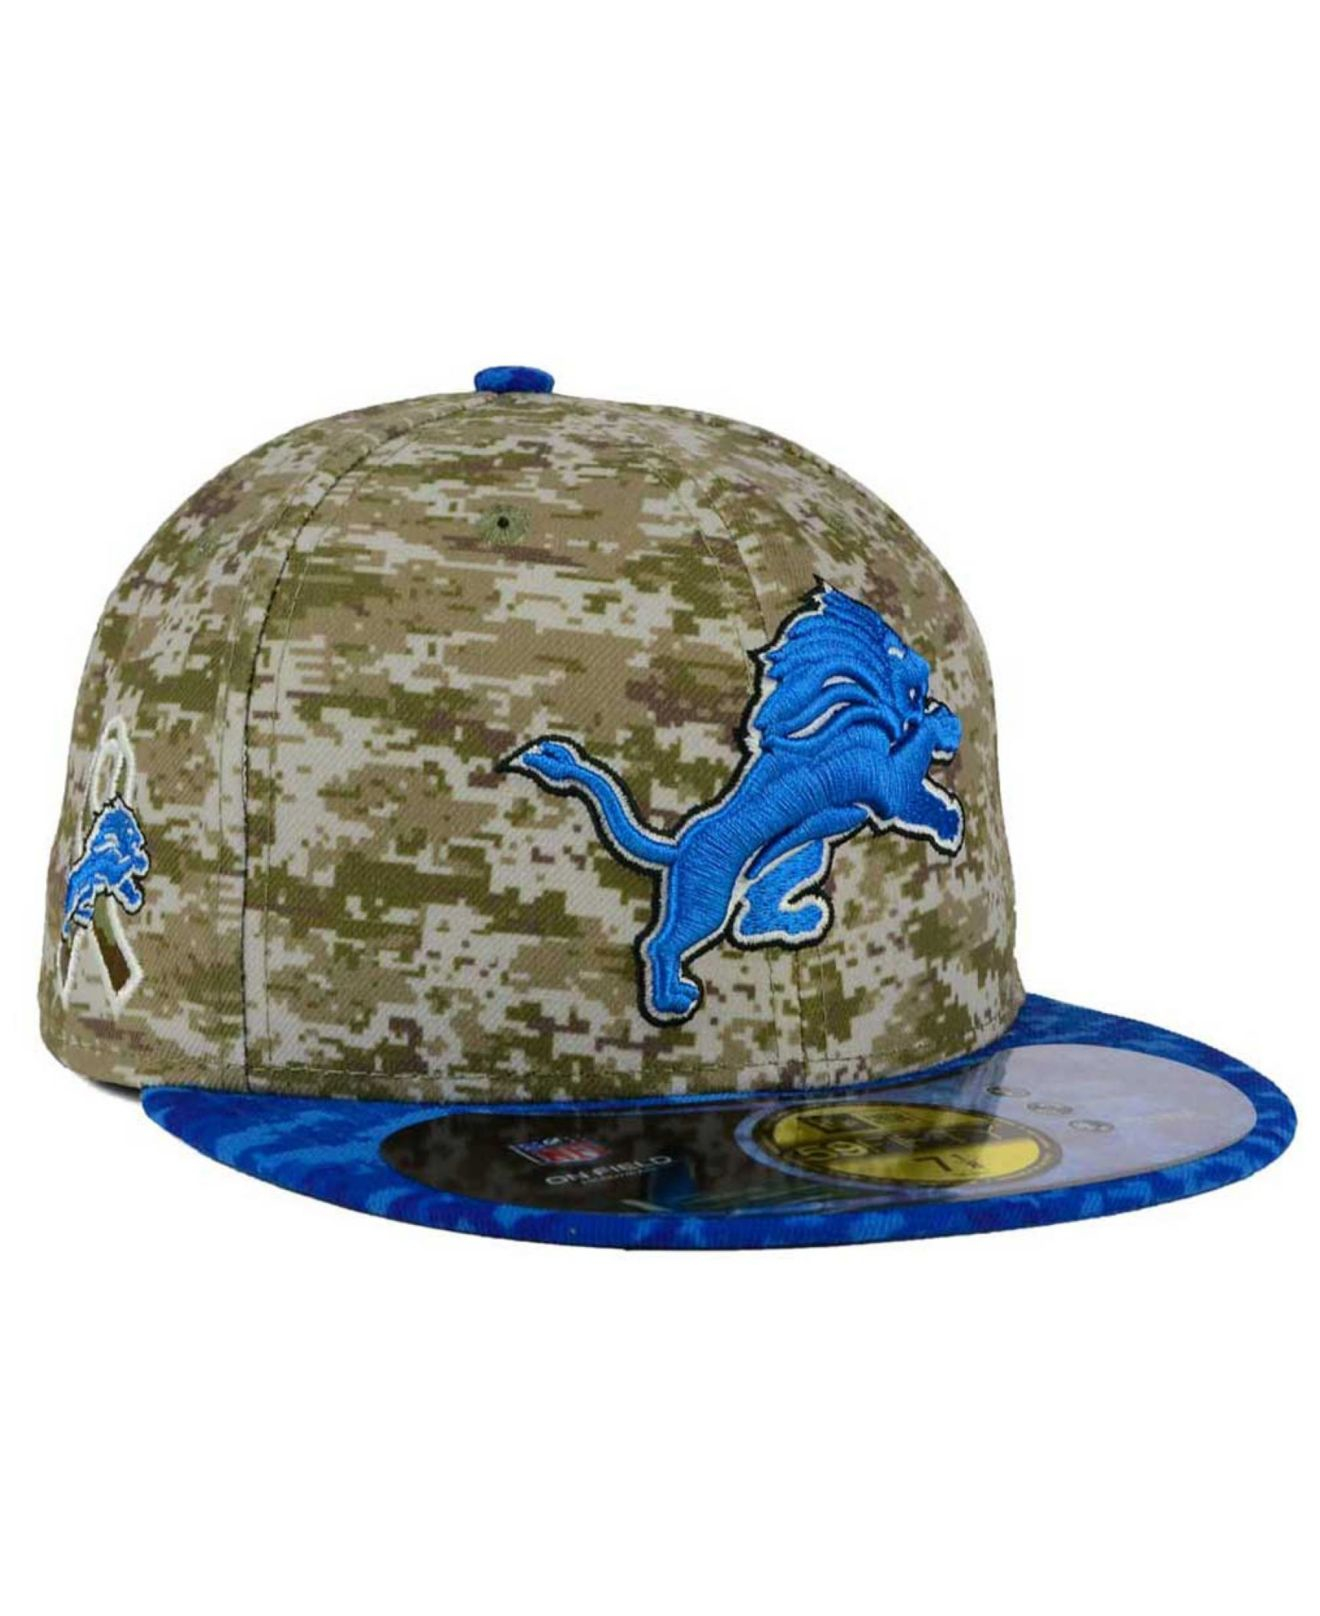 ... release date lyst ktz detroit lions salute to service 59fifty cap in  blue for men ed44a 24d2eb572